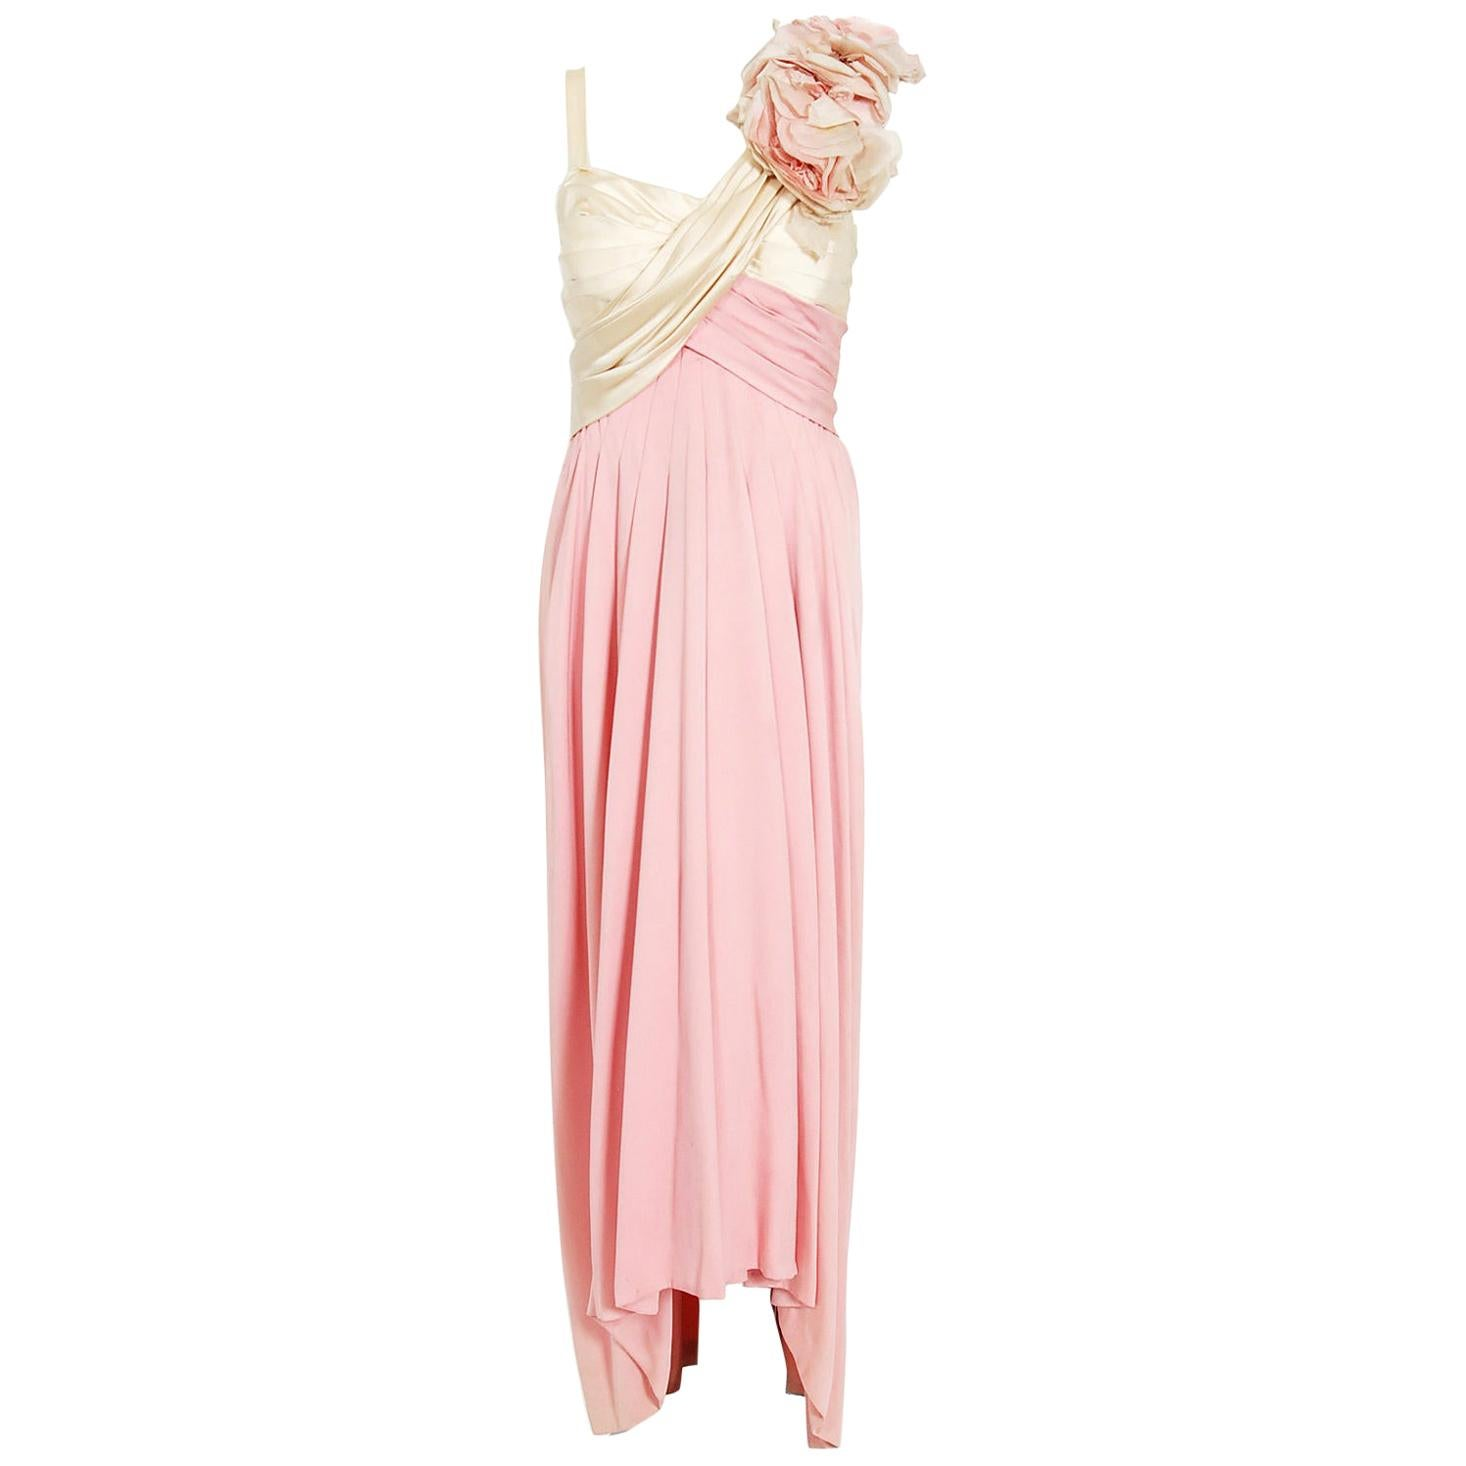 Vintage 1960's Film-Worn Pink Silk and Ivory Satin Floral Appliqué Draped Gown